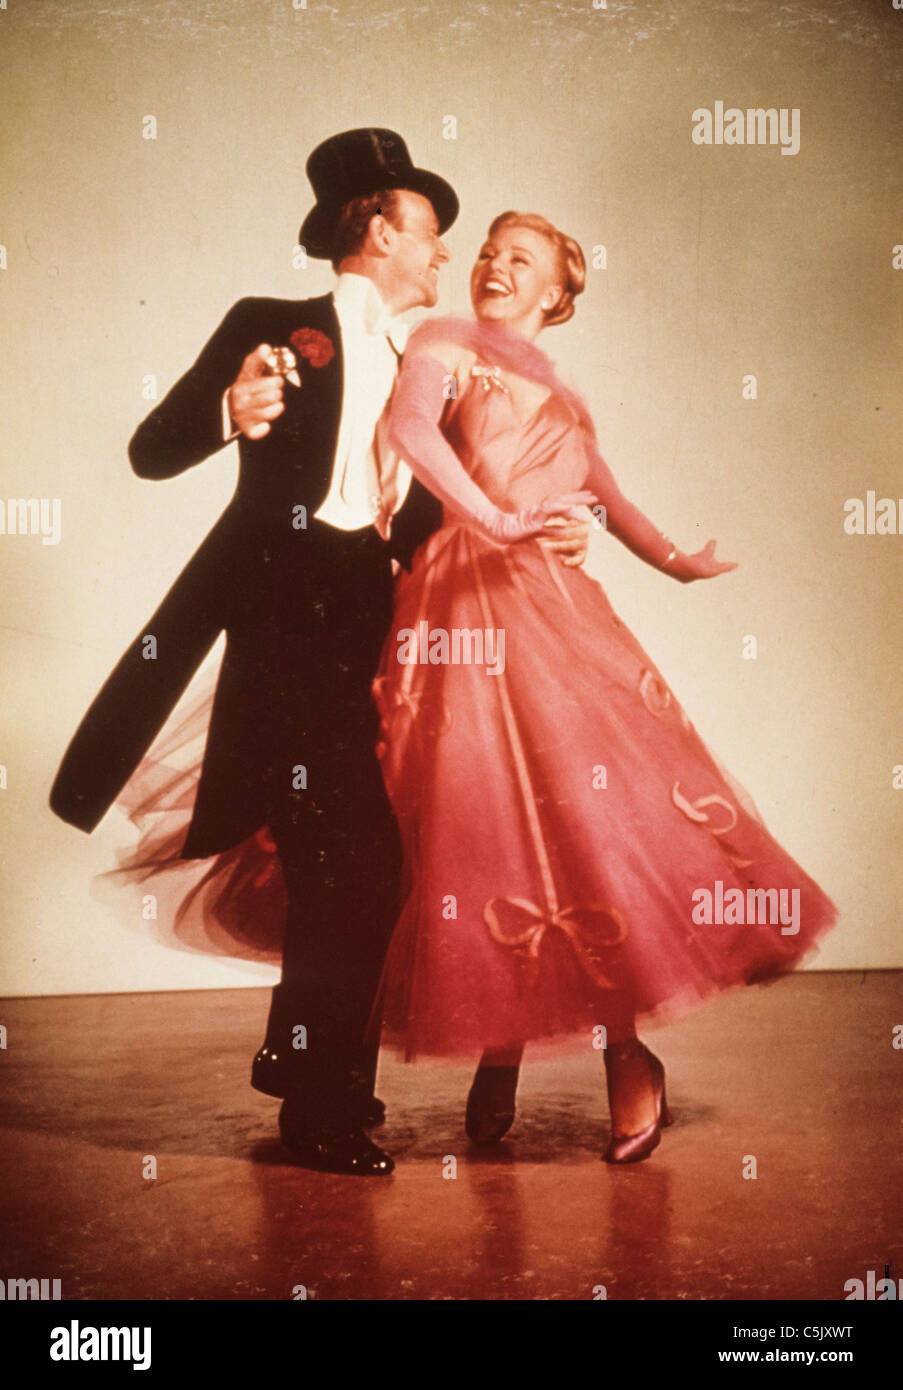 Fred Astaire and Ginger Rogers - Stock Image